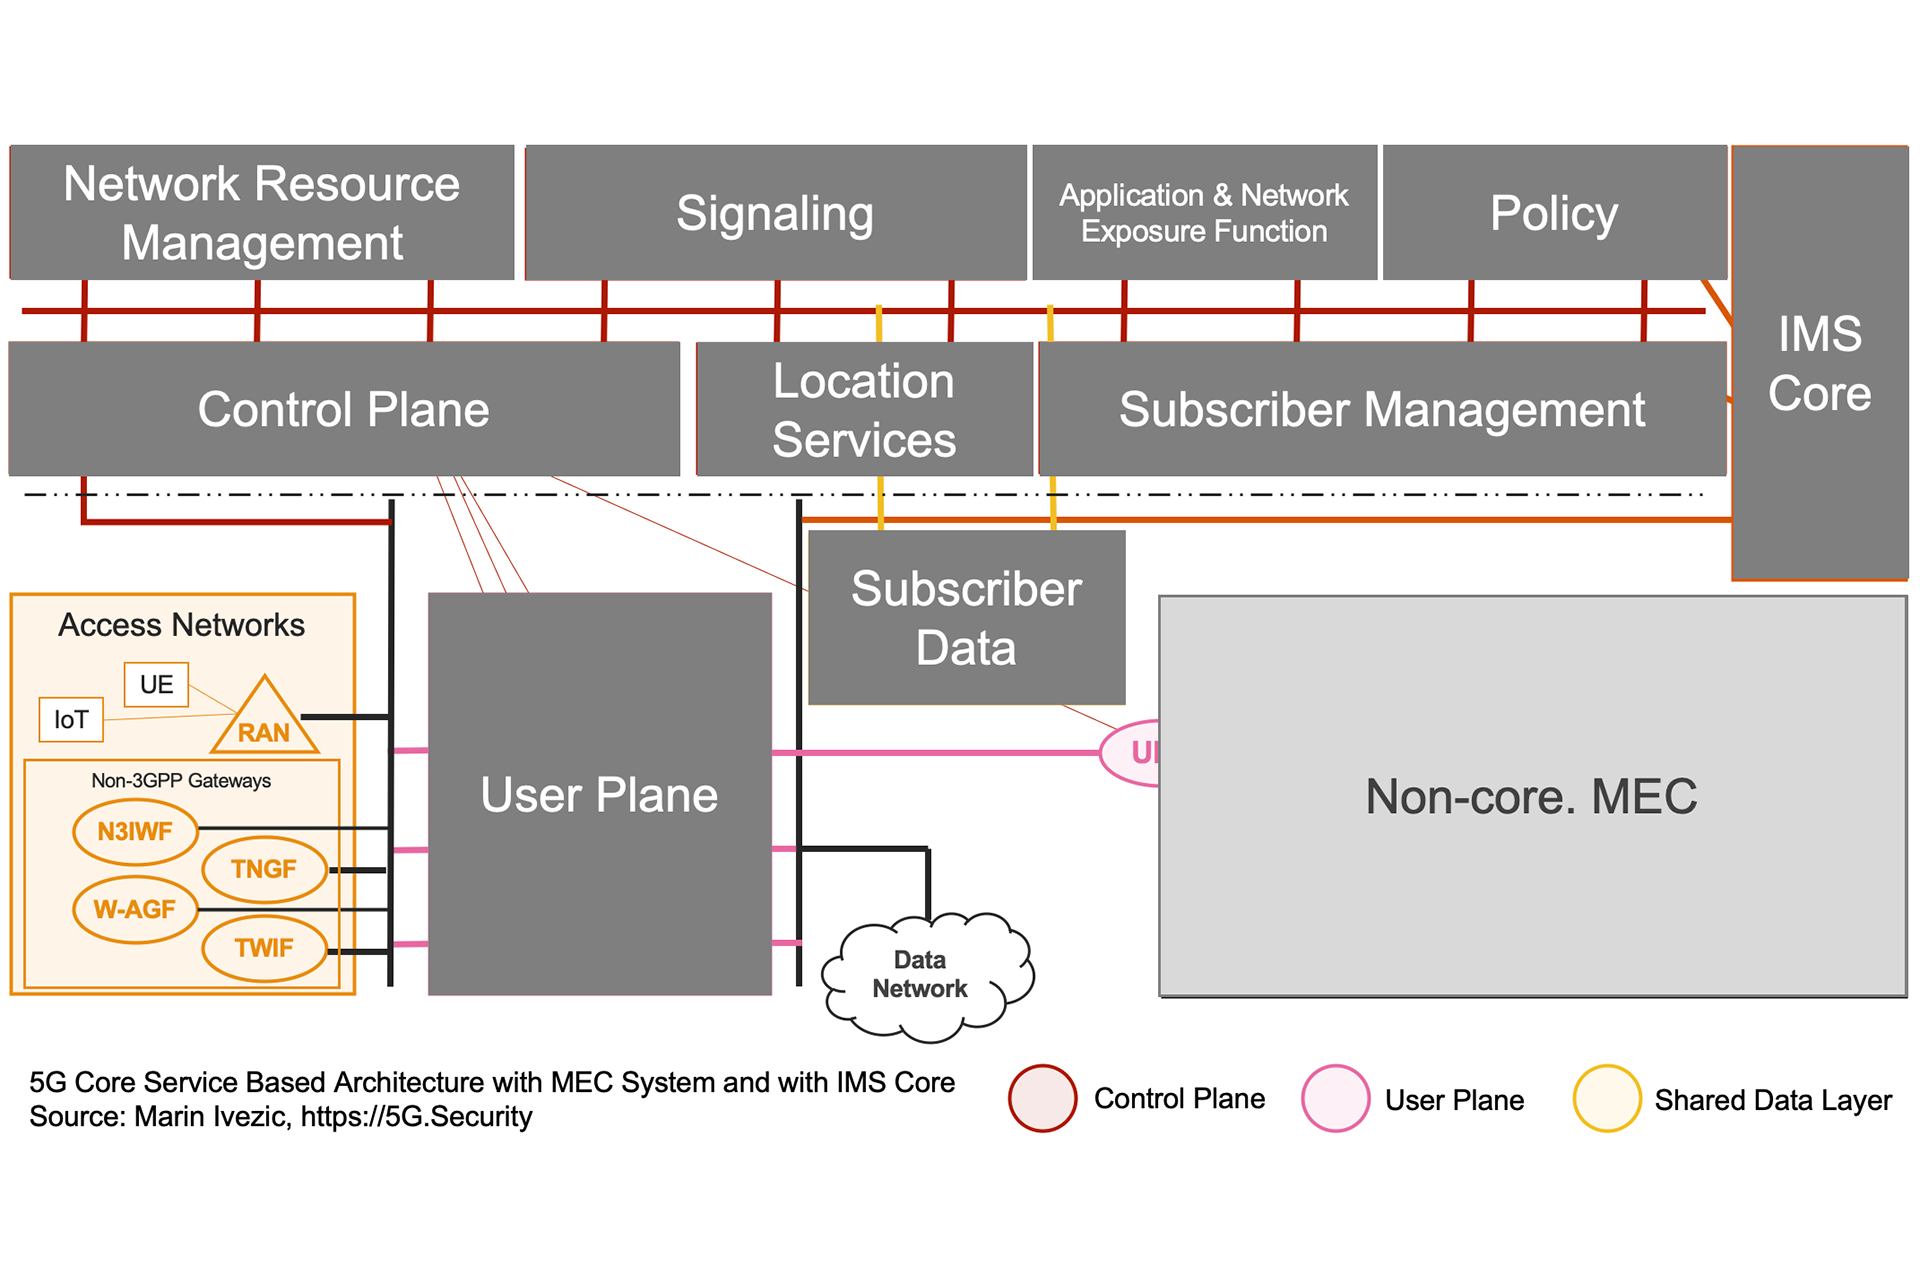 5G SBA IMS MEC Architecture - Access Networks